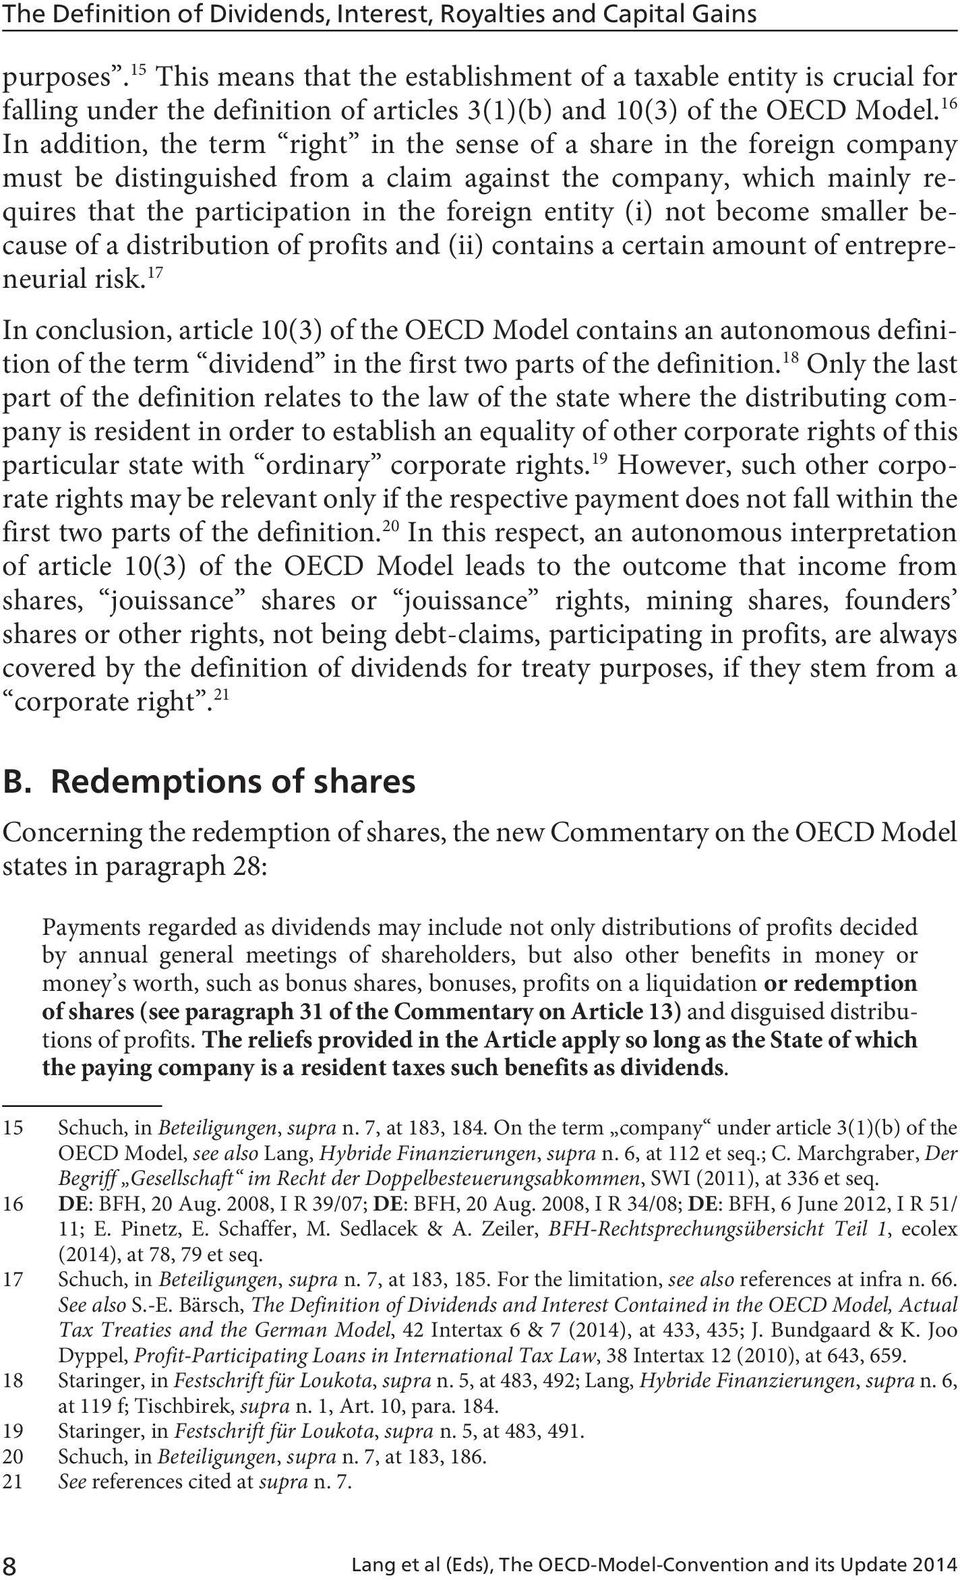 16 In addition, the term right in the sense of a share in the foreign company must be distinguished from a claim against the company, which mainly requires that the participation in the foreign